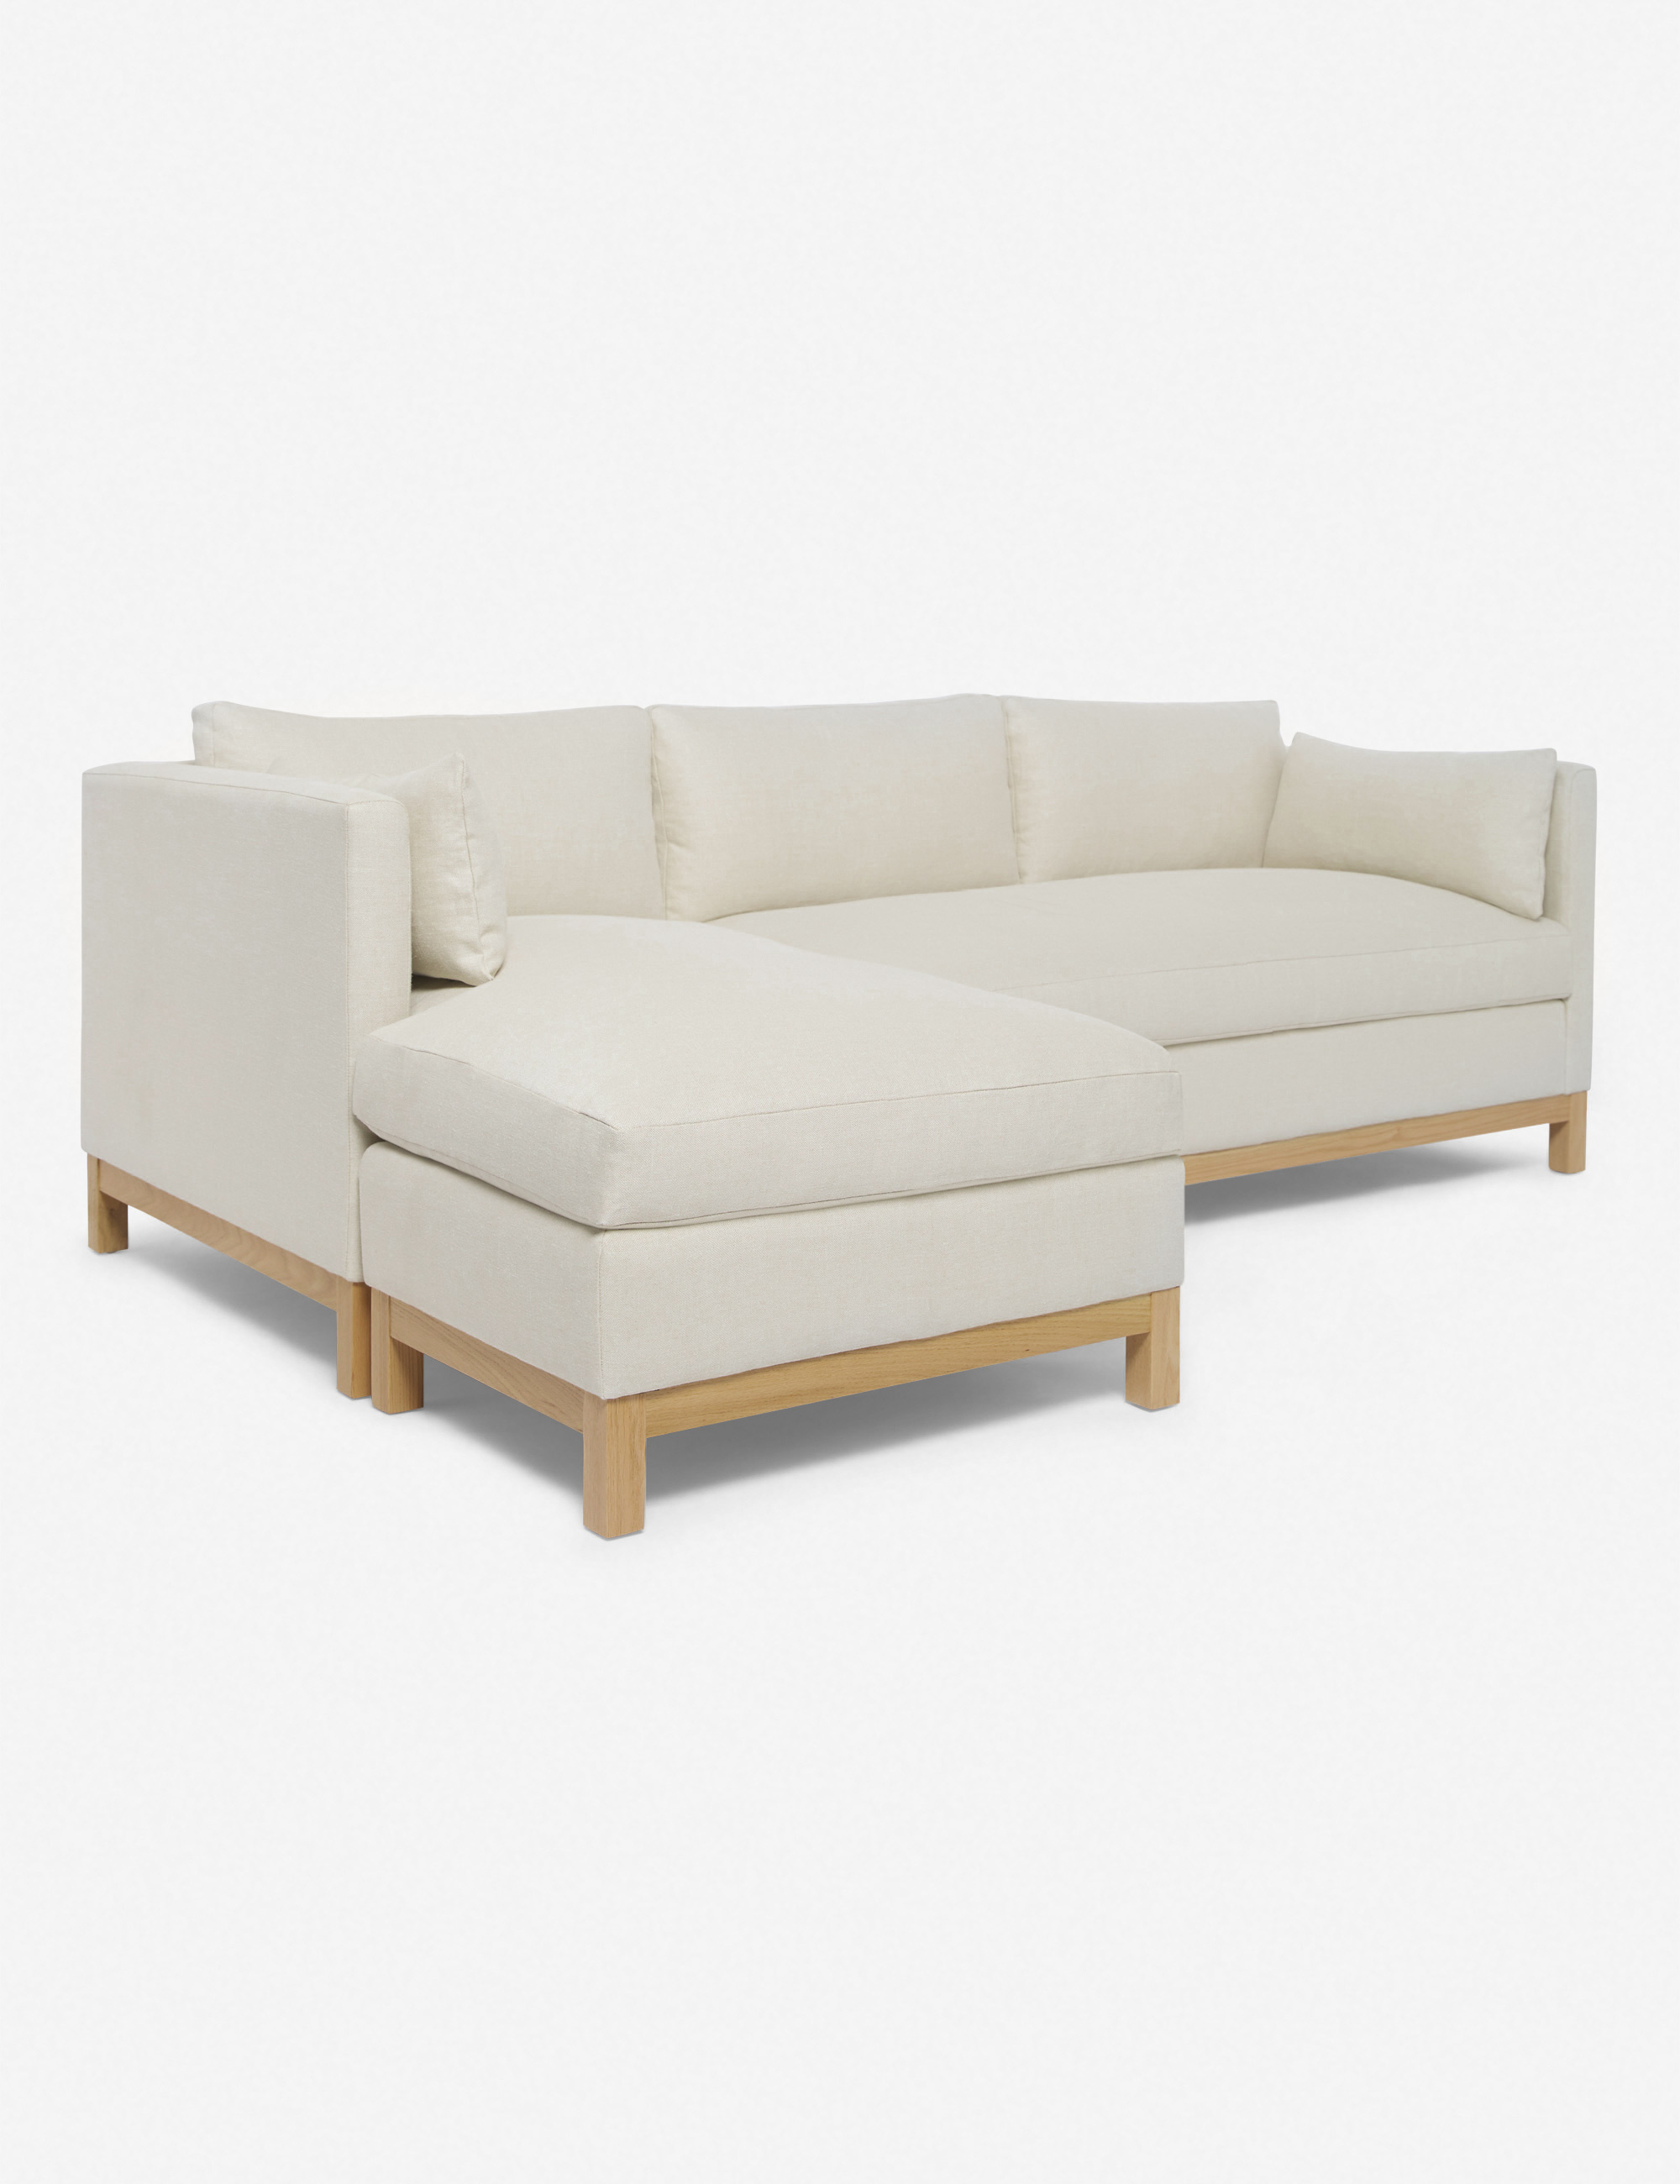 GINNY_MACDONALD_Hollingworth-Sectional-LAF-Linen-Natural-2